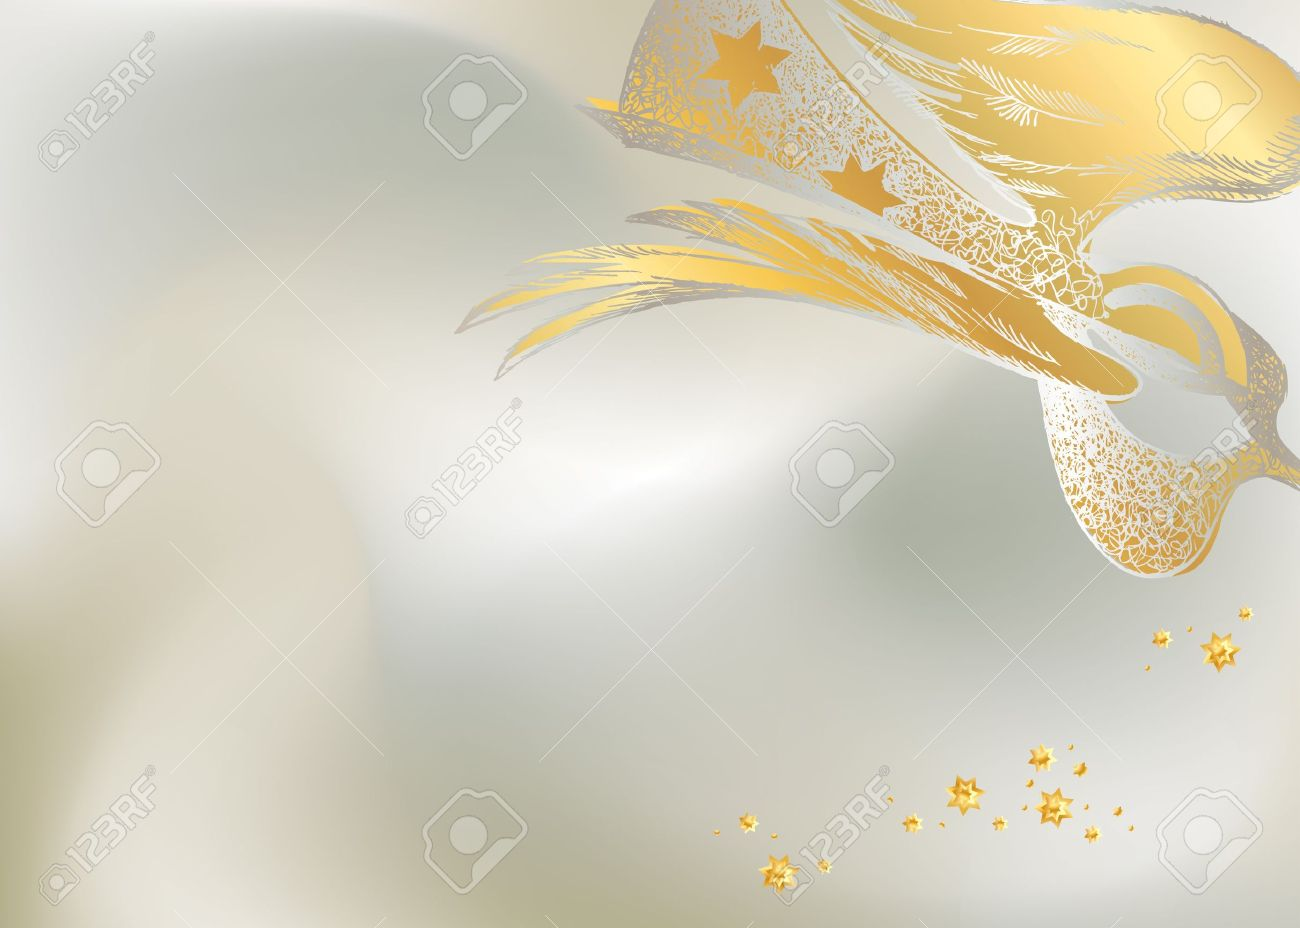 Silver Christmas background with the lacy figure of an angel. Vector illustration. Stock Vector - 10680467